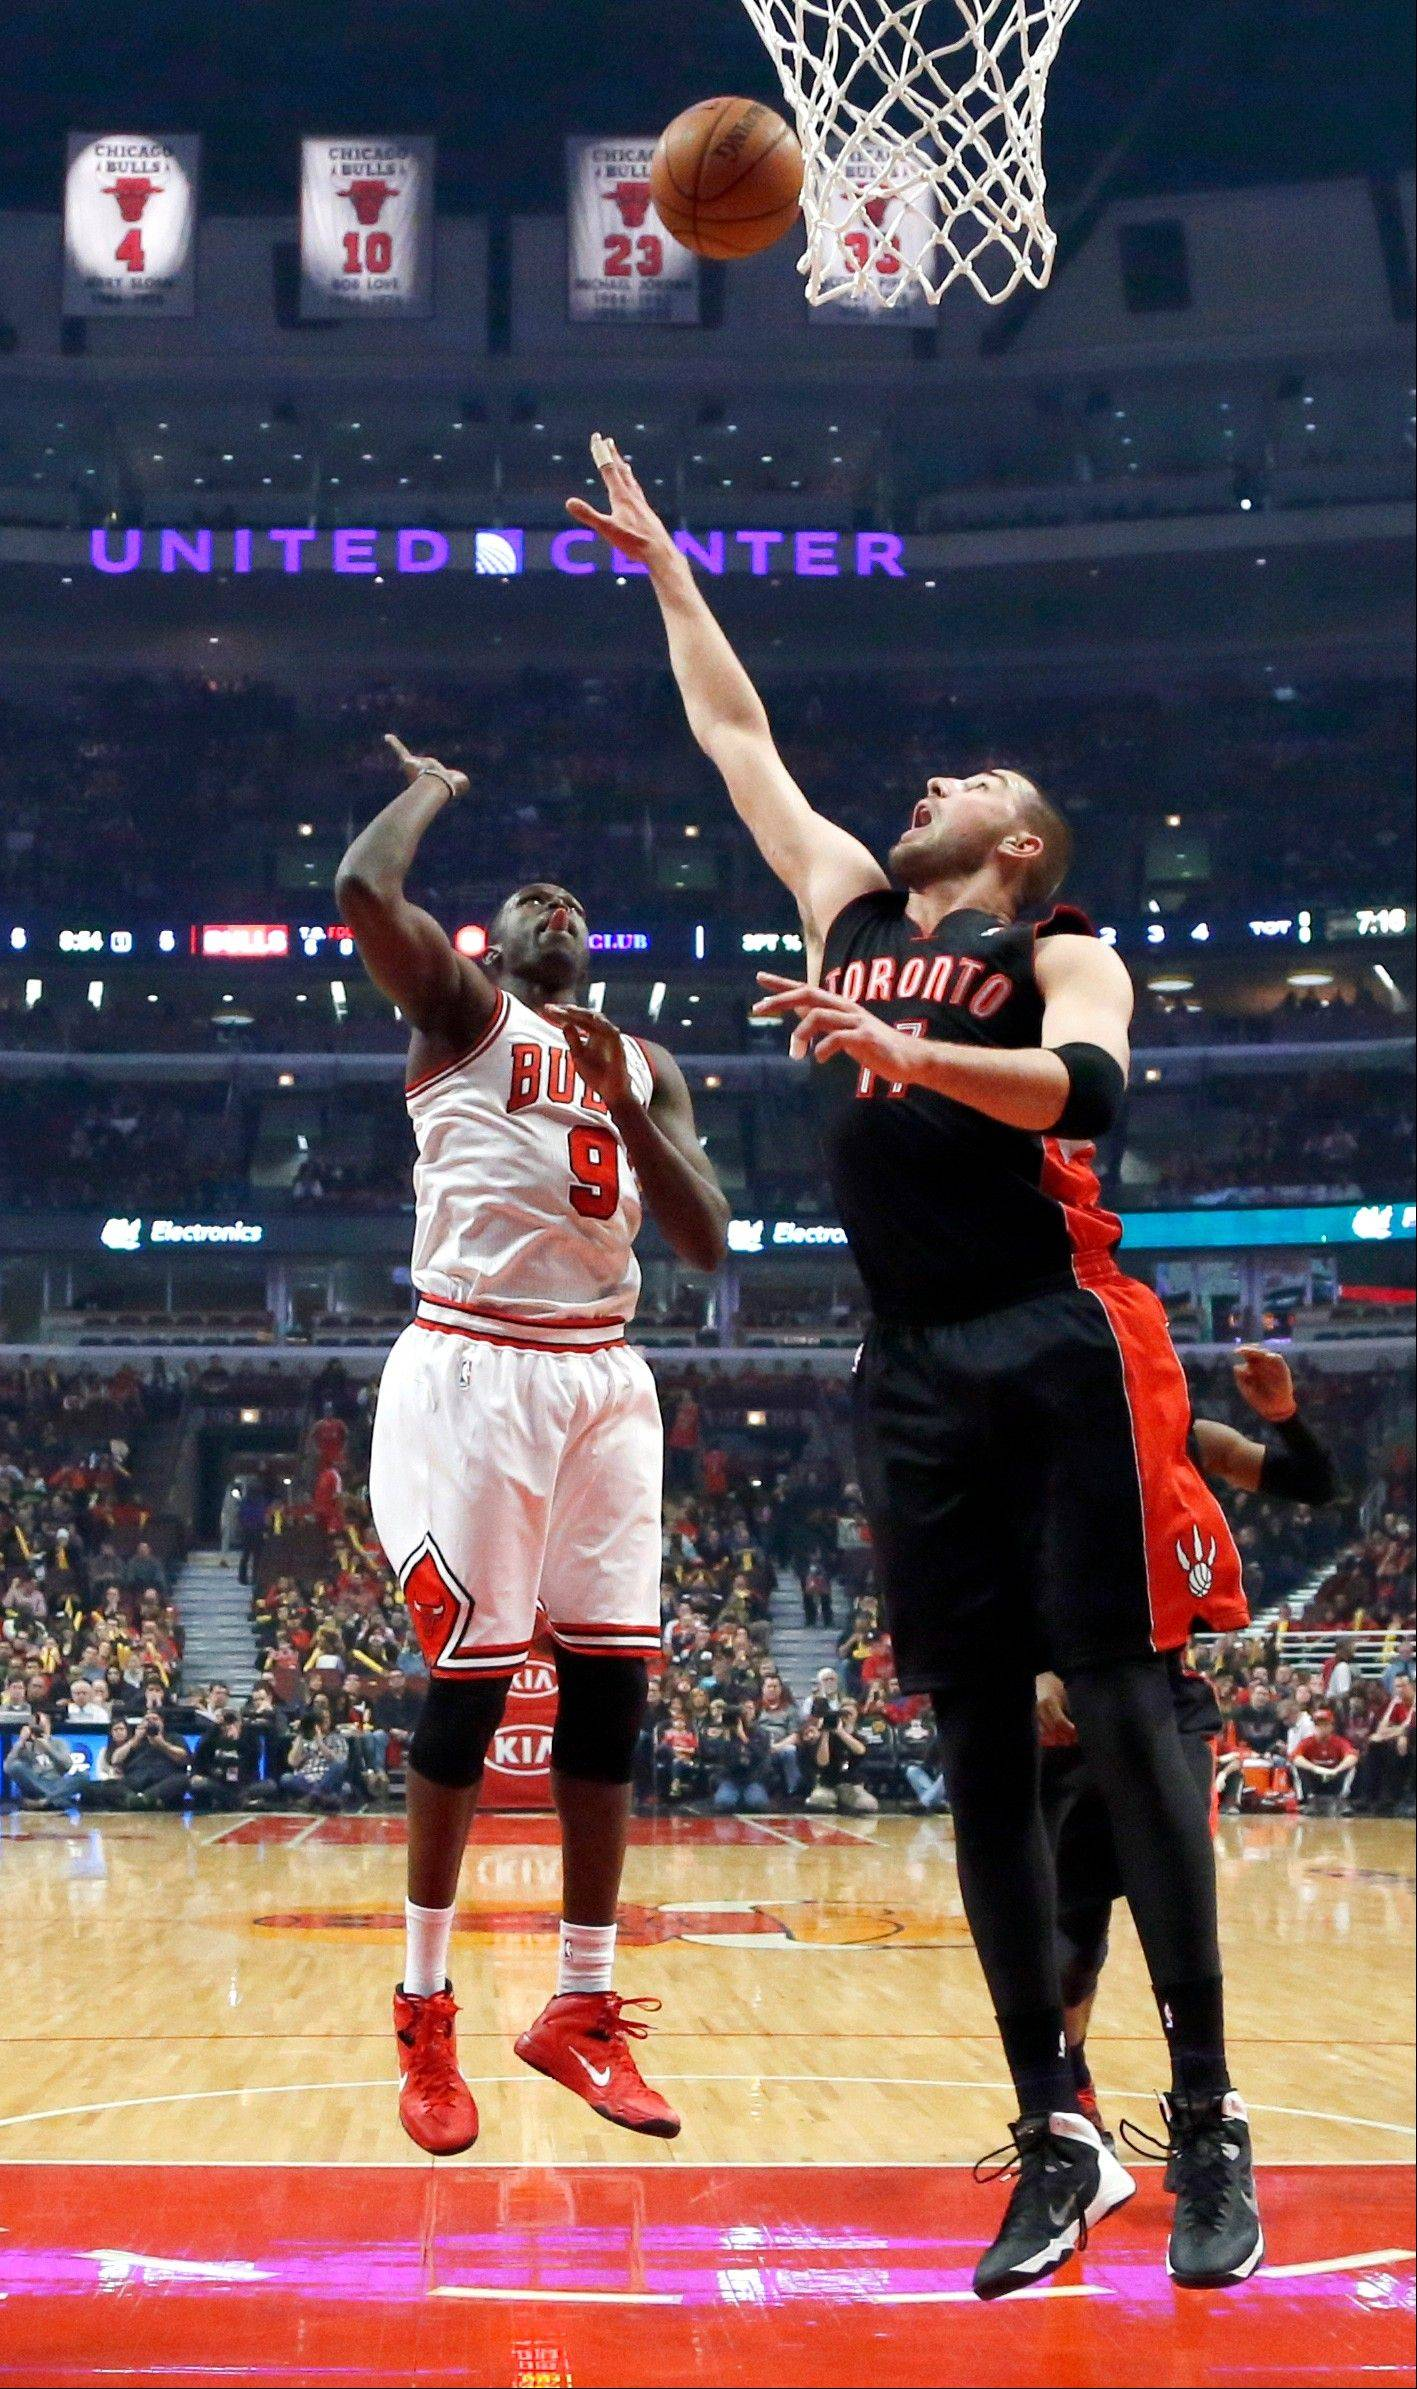 Chicago Bulls forward Luol Deng (9) watches his shot score over Toronto Raptors center Jonas Valanciunas during the first half of an NBA basketball game Tuesday, Dec. 31, 2013, in Chicago. (AP Photo/Charles Rex Arbogast)